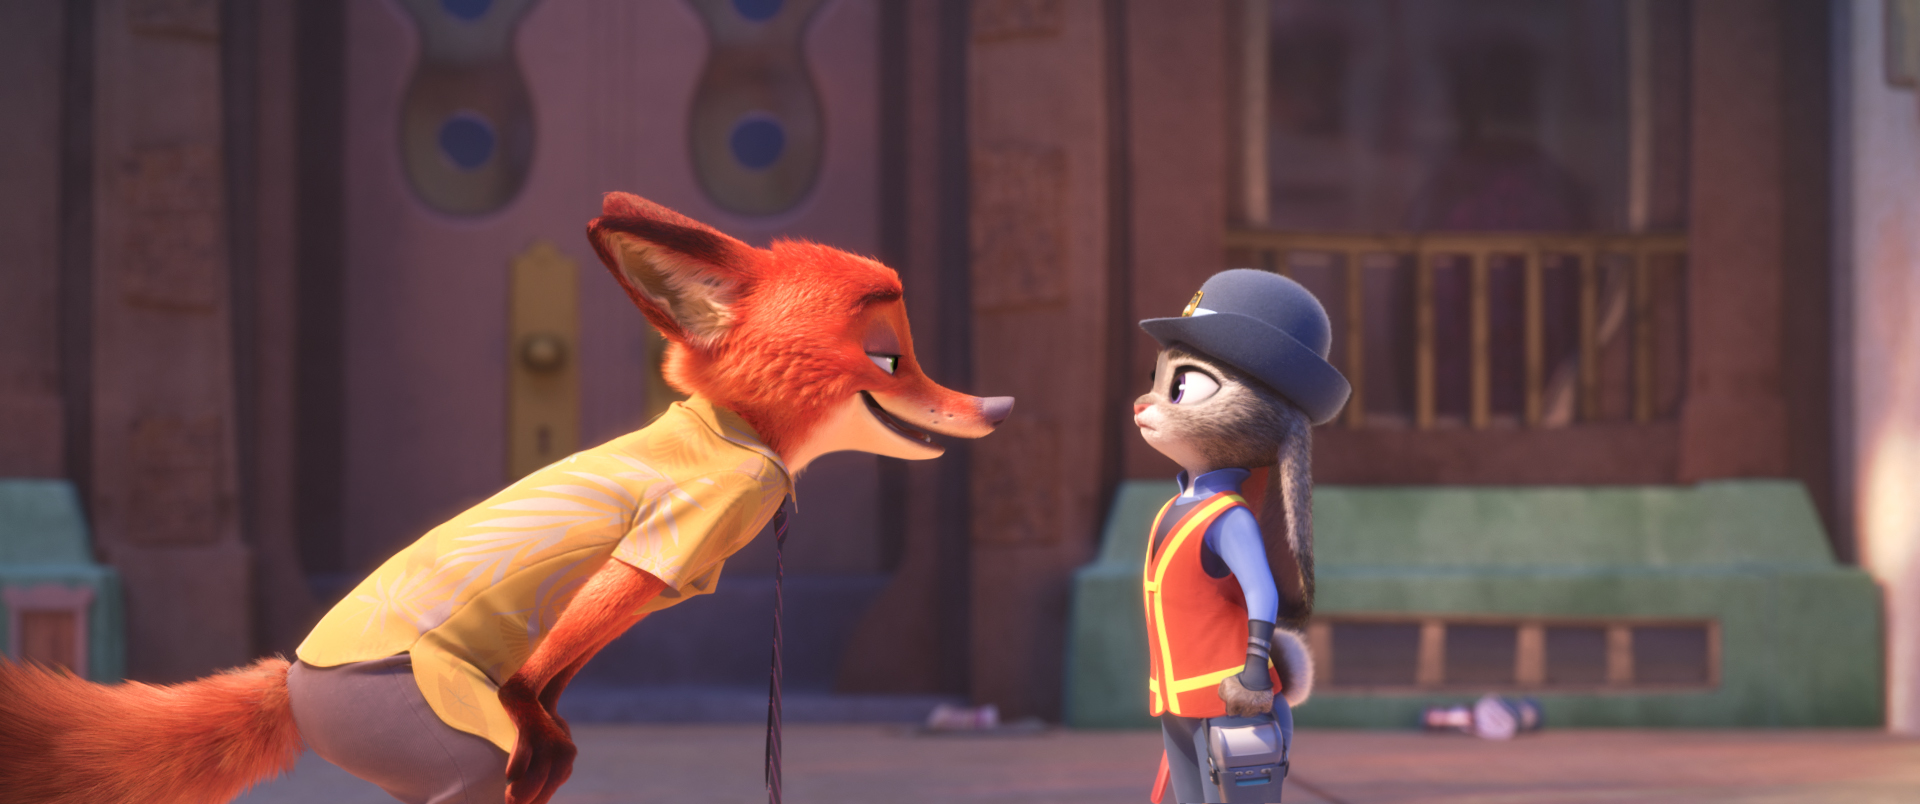 "NATURAL ENEMIES — Zootopia's first bunny officer Judy Hopps finds herself face to face with a fast-talking, scam-artist fox in Walt Disney Animation Studios' ""Zootopia."" Featuring the voices of Ginnifer Goodwin as Judy and Jason Bateman as Nick, ""Zootopia"" opens in theaters on March 4, 2016. ©2016 Disney. All Rights Reserved."